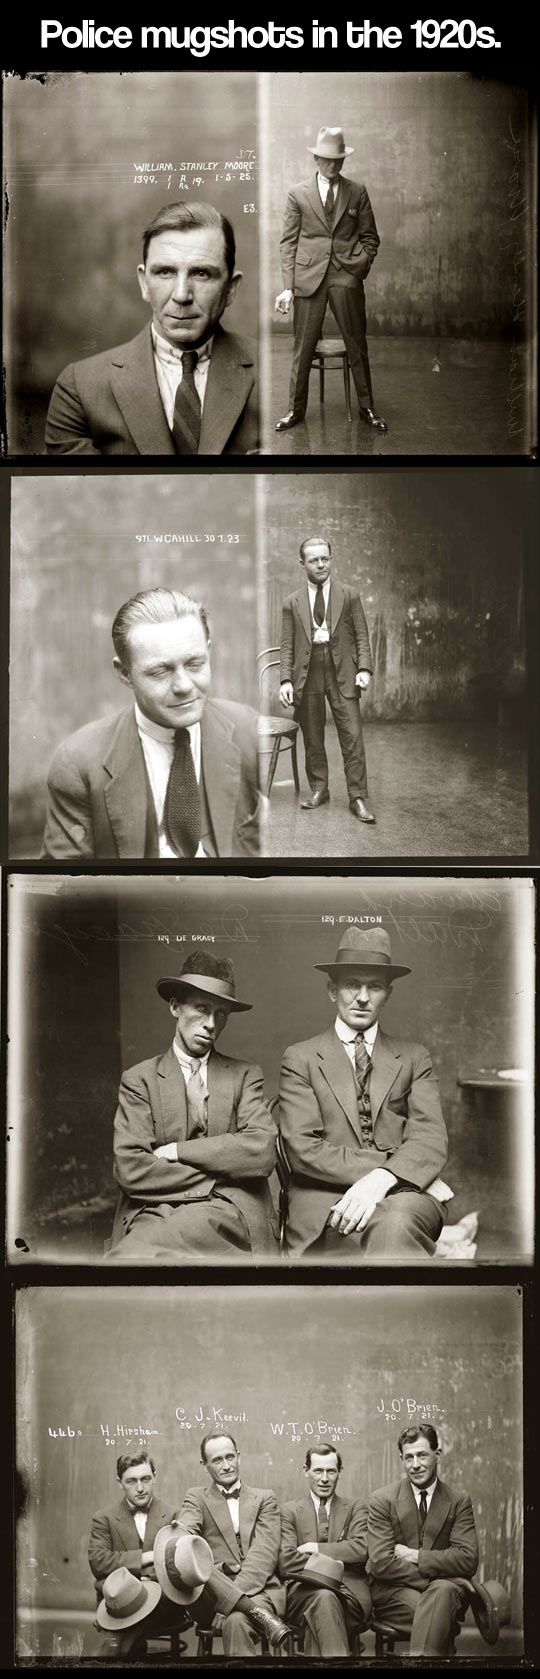 Police mugshots from the 1920s. I wish the criminals were still like this.